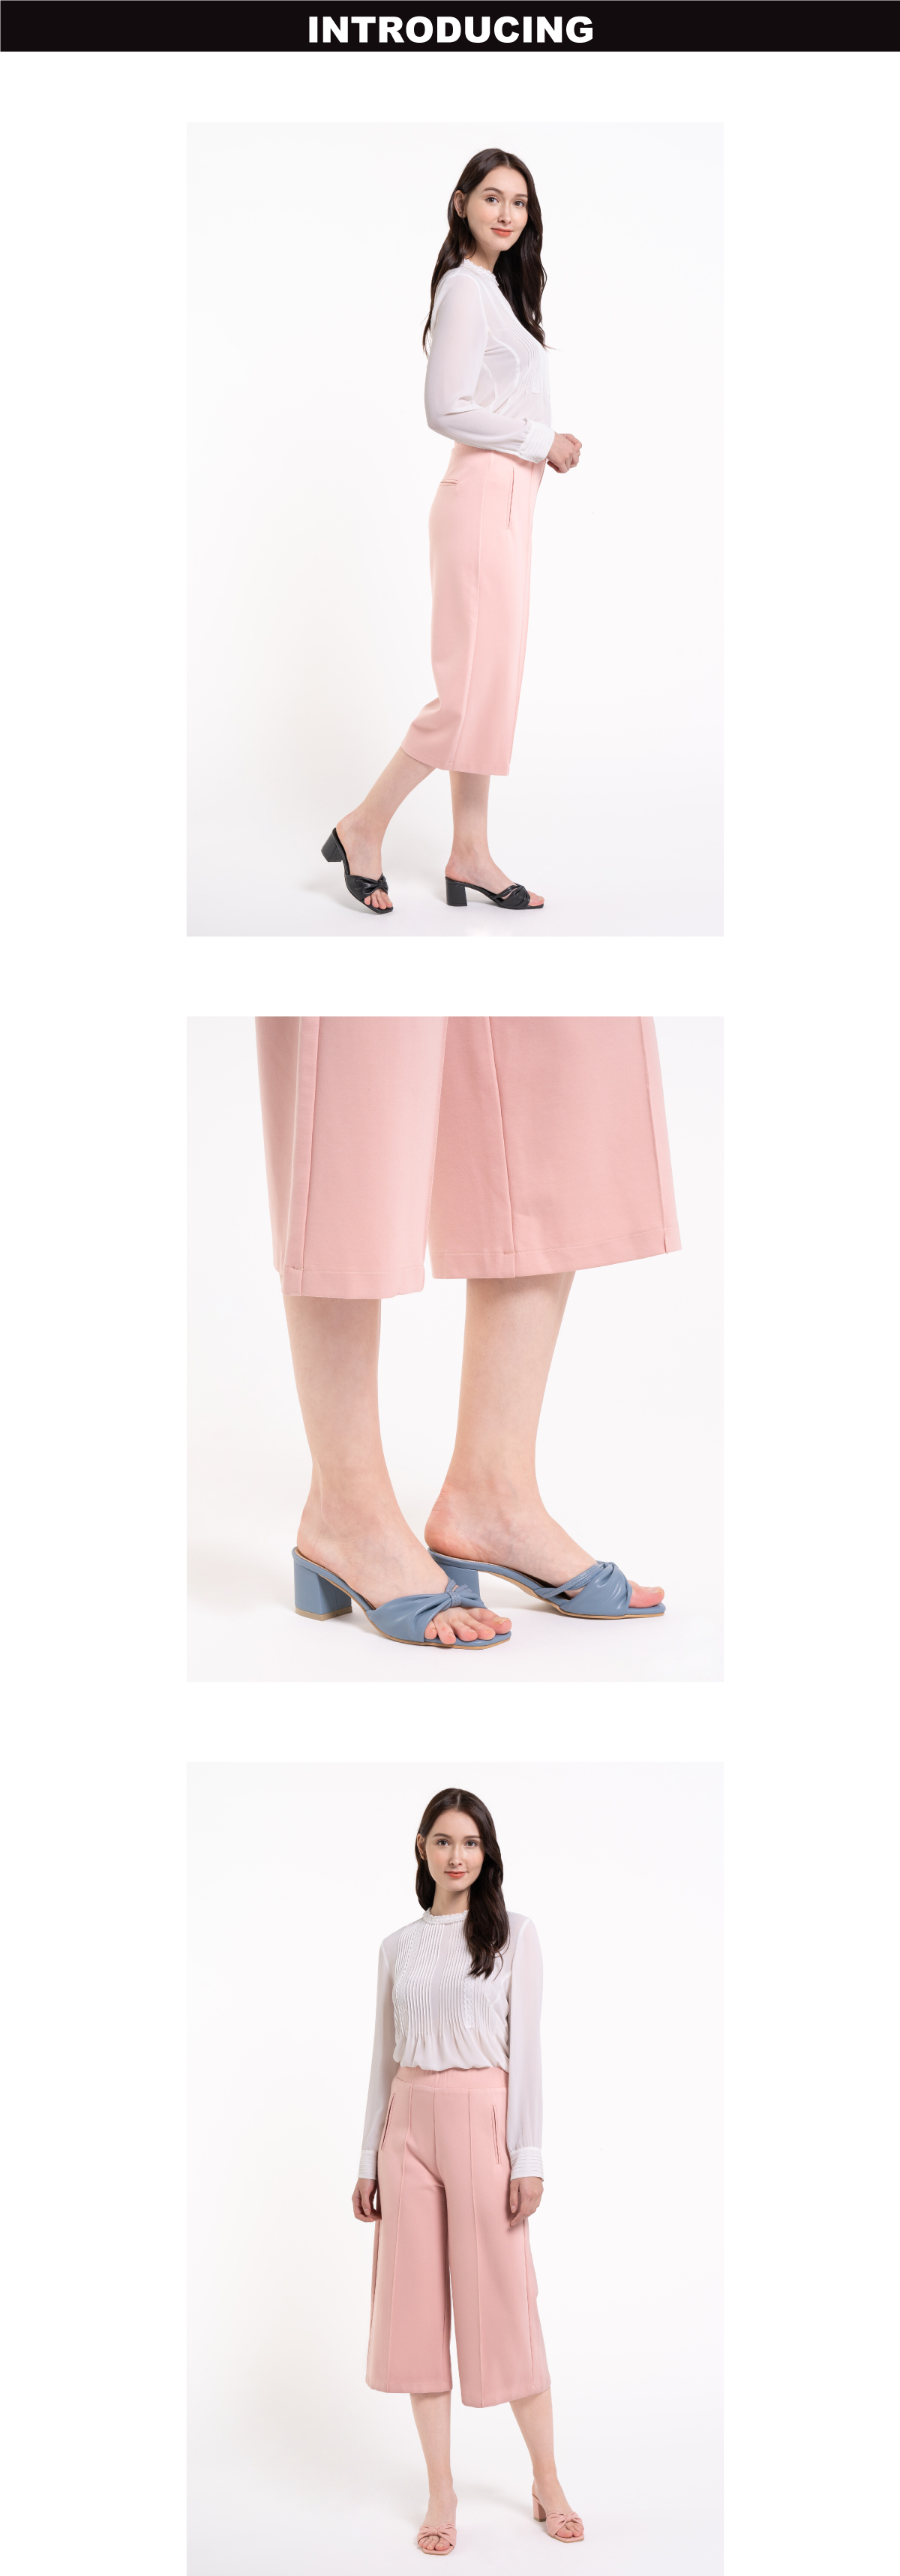 "33340 J008 1 - 2 1/2"" Cotton Candy Bow Slip On"